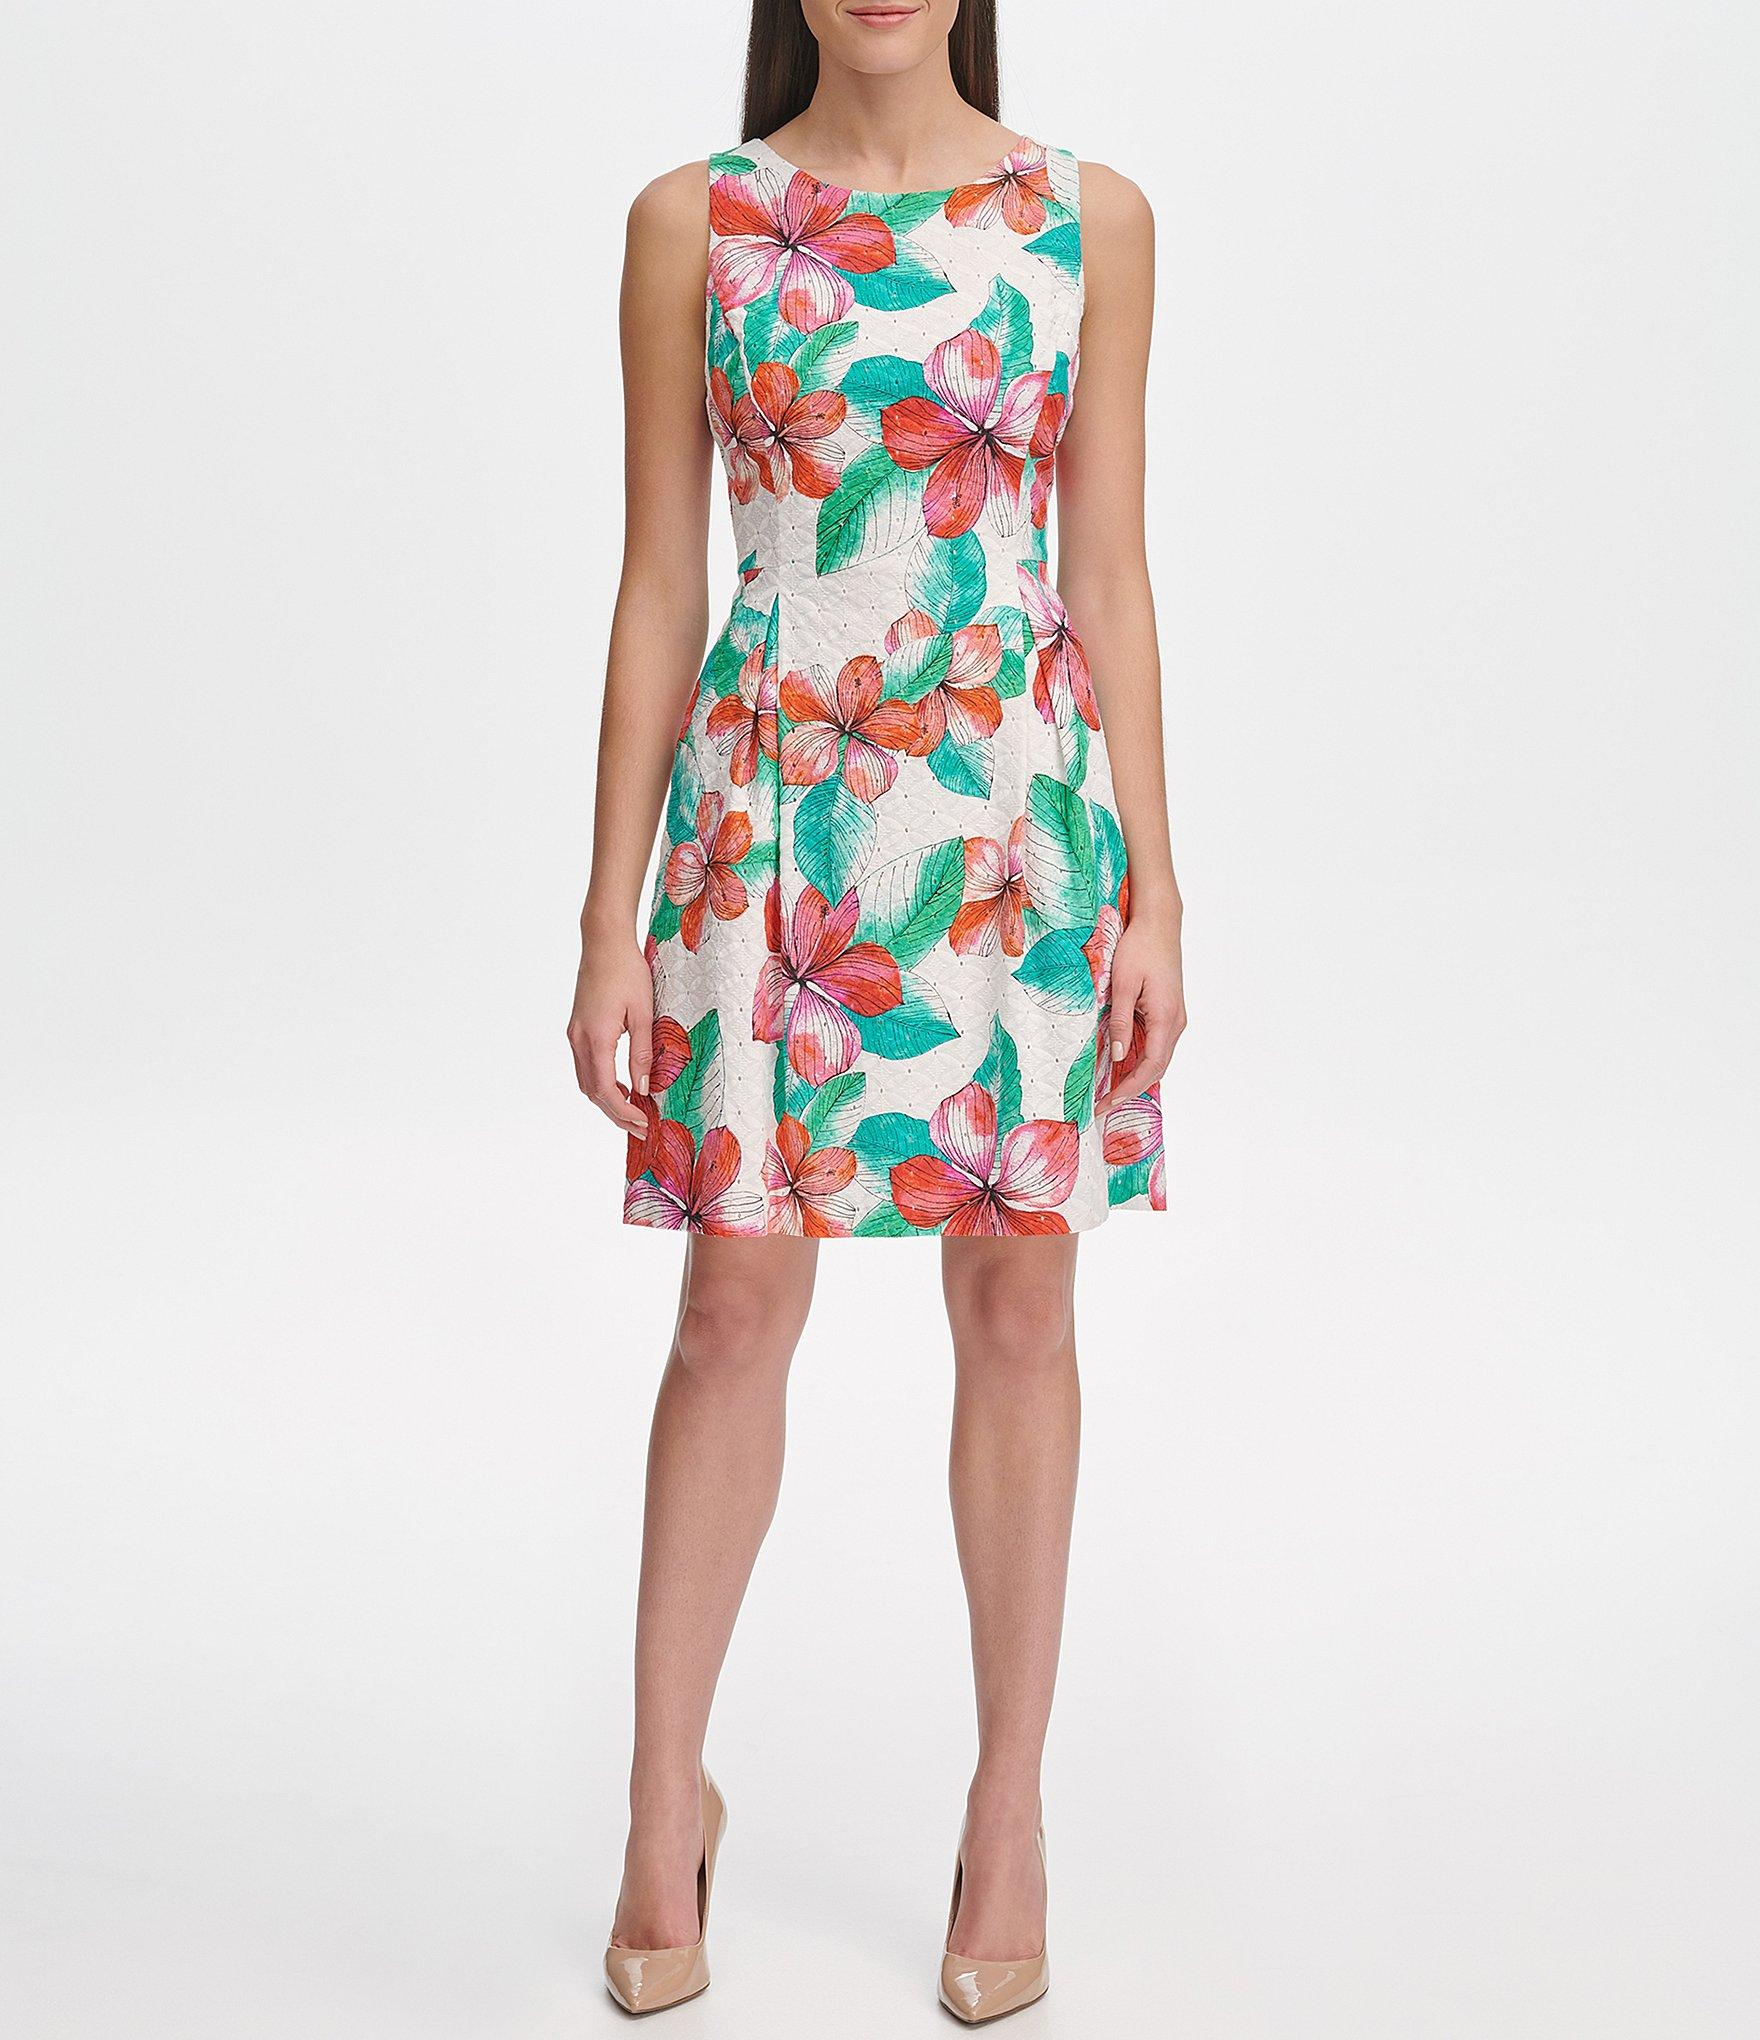 cb13fe672d7 Lyst - Tommy Hilfiger Eyelet Hibiscus Floral Print Fit & Flare Dress ...